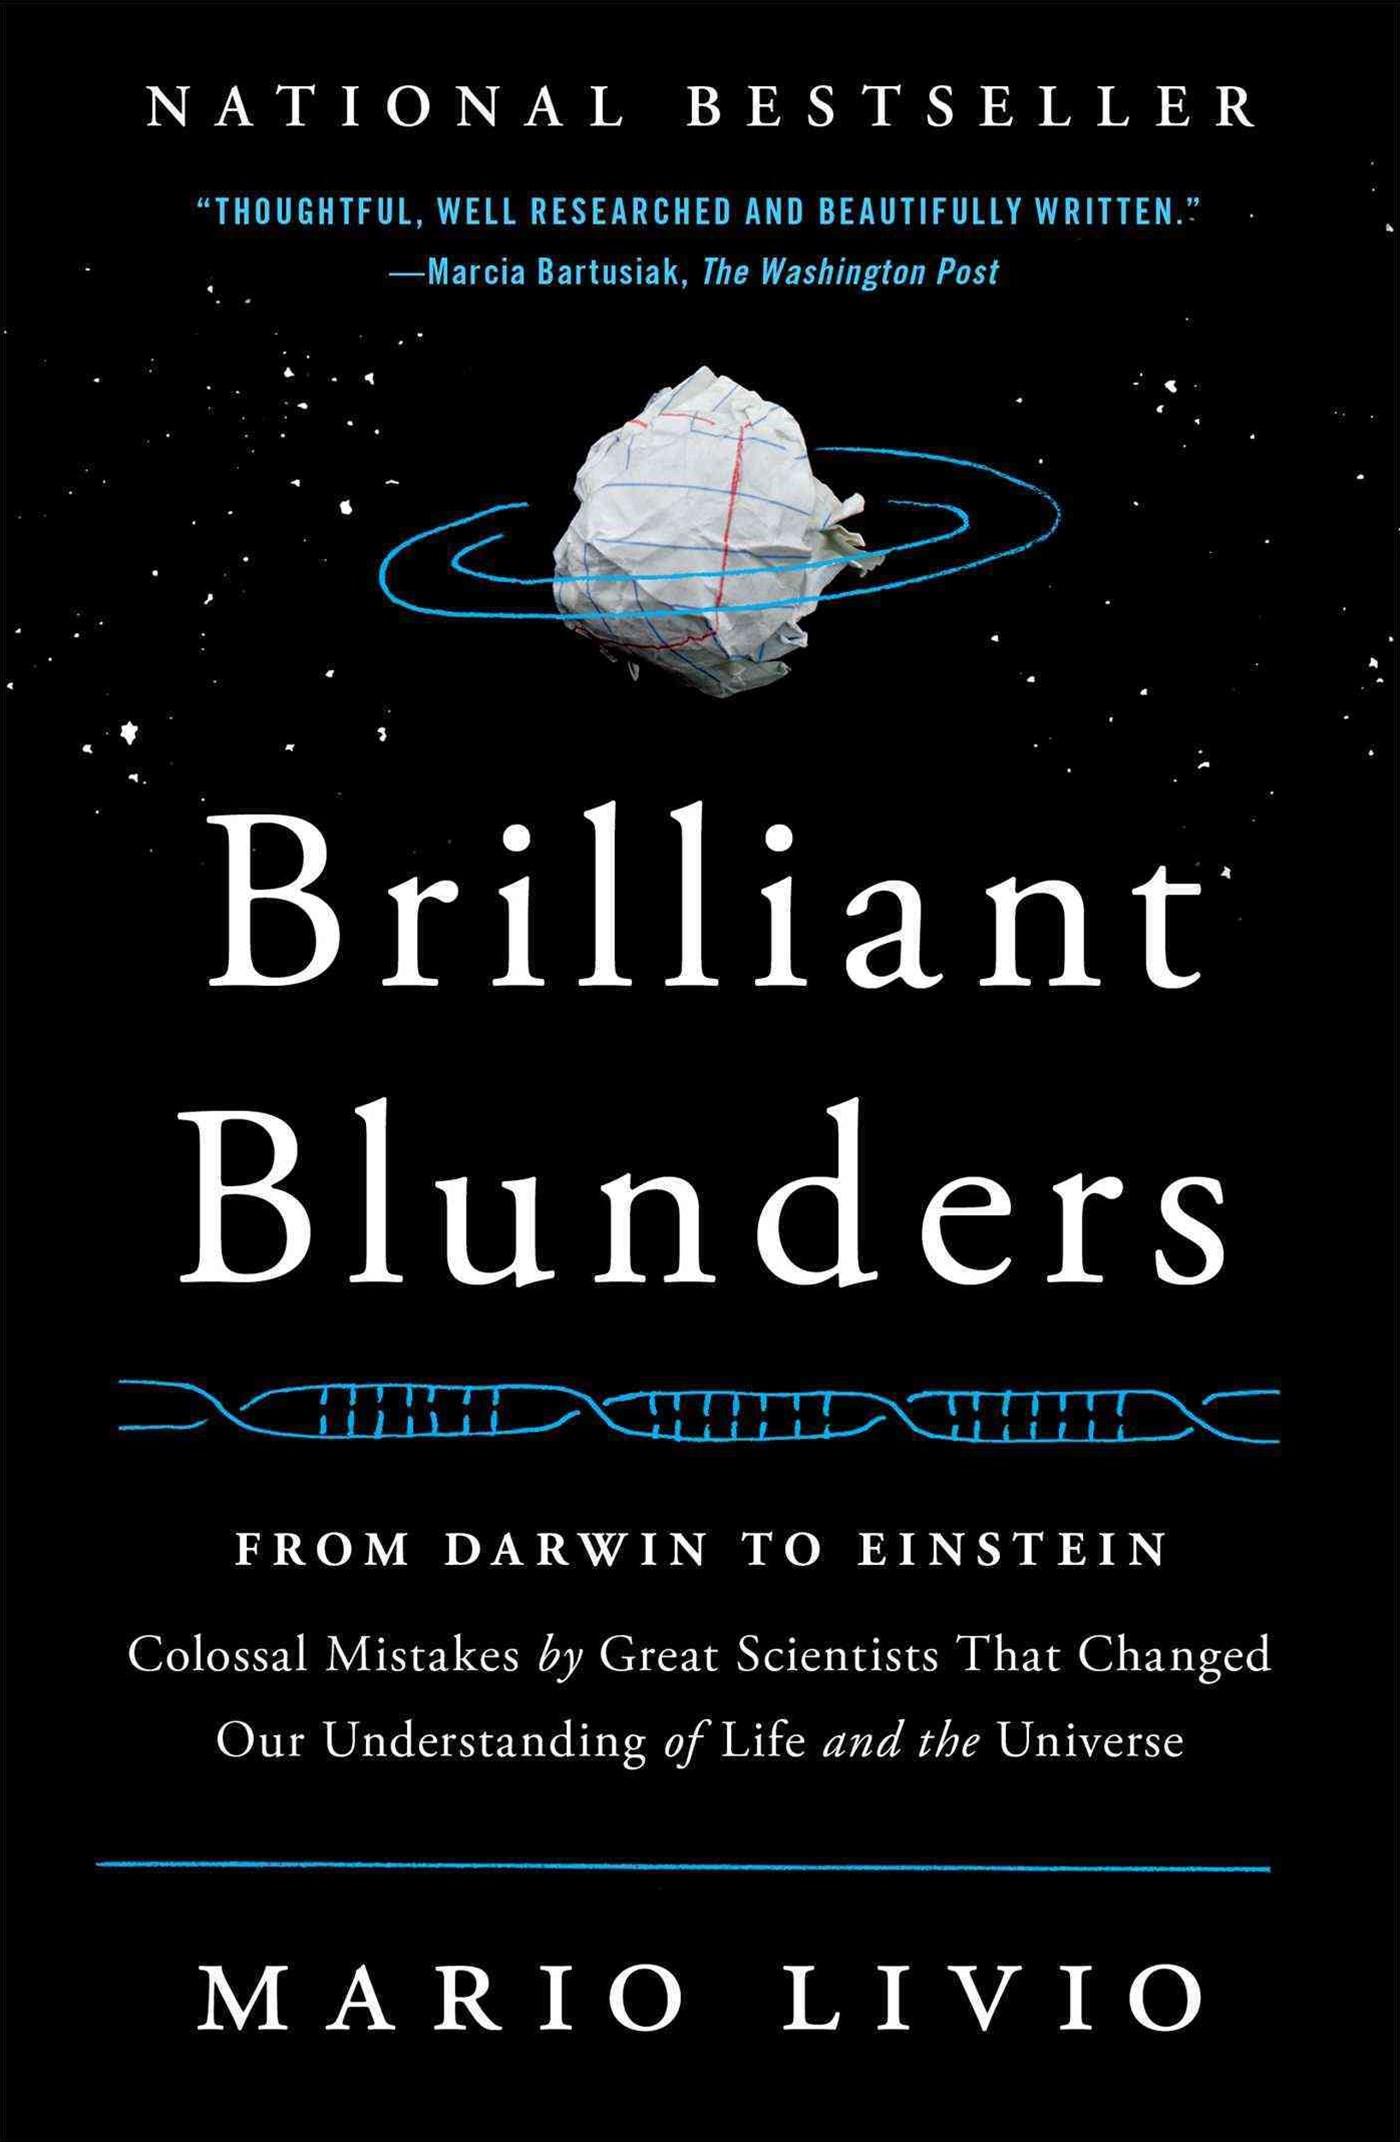 Brilliant Blunders: From Darwin to Einstein - Colossal Mistakes by GreatScientists That Changed Our Understanding of Life and the Universe